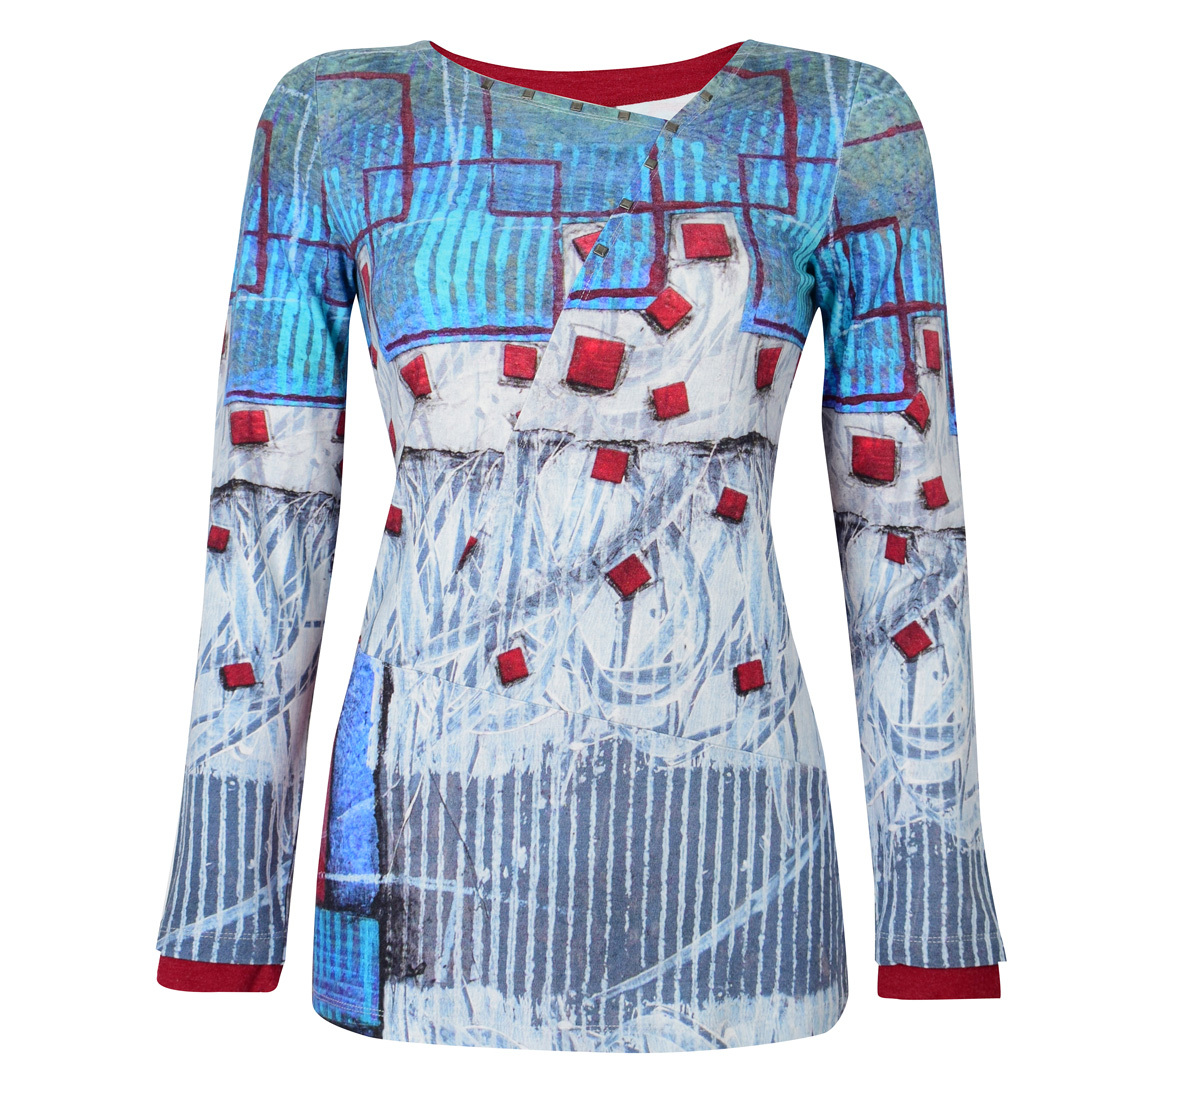 Simply Art Dolcezza: Asymmetrical Spiritually Square Uneven Abstract Art Tunic (1 Left!) Dolcezza_SimplyArt_59661